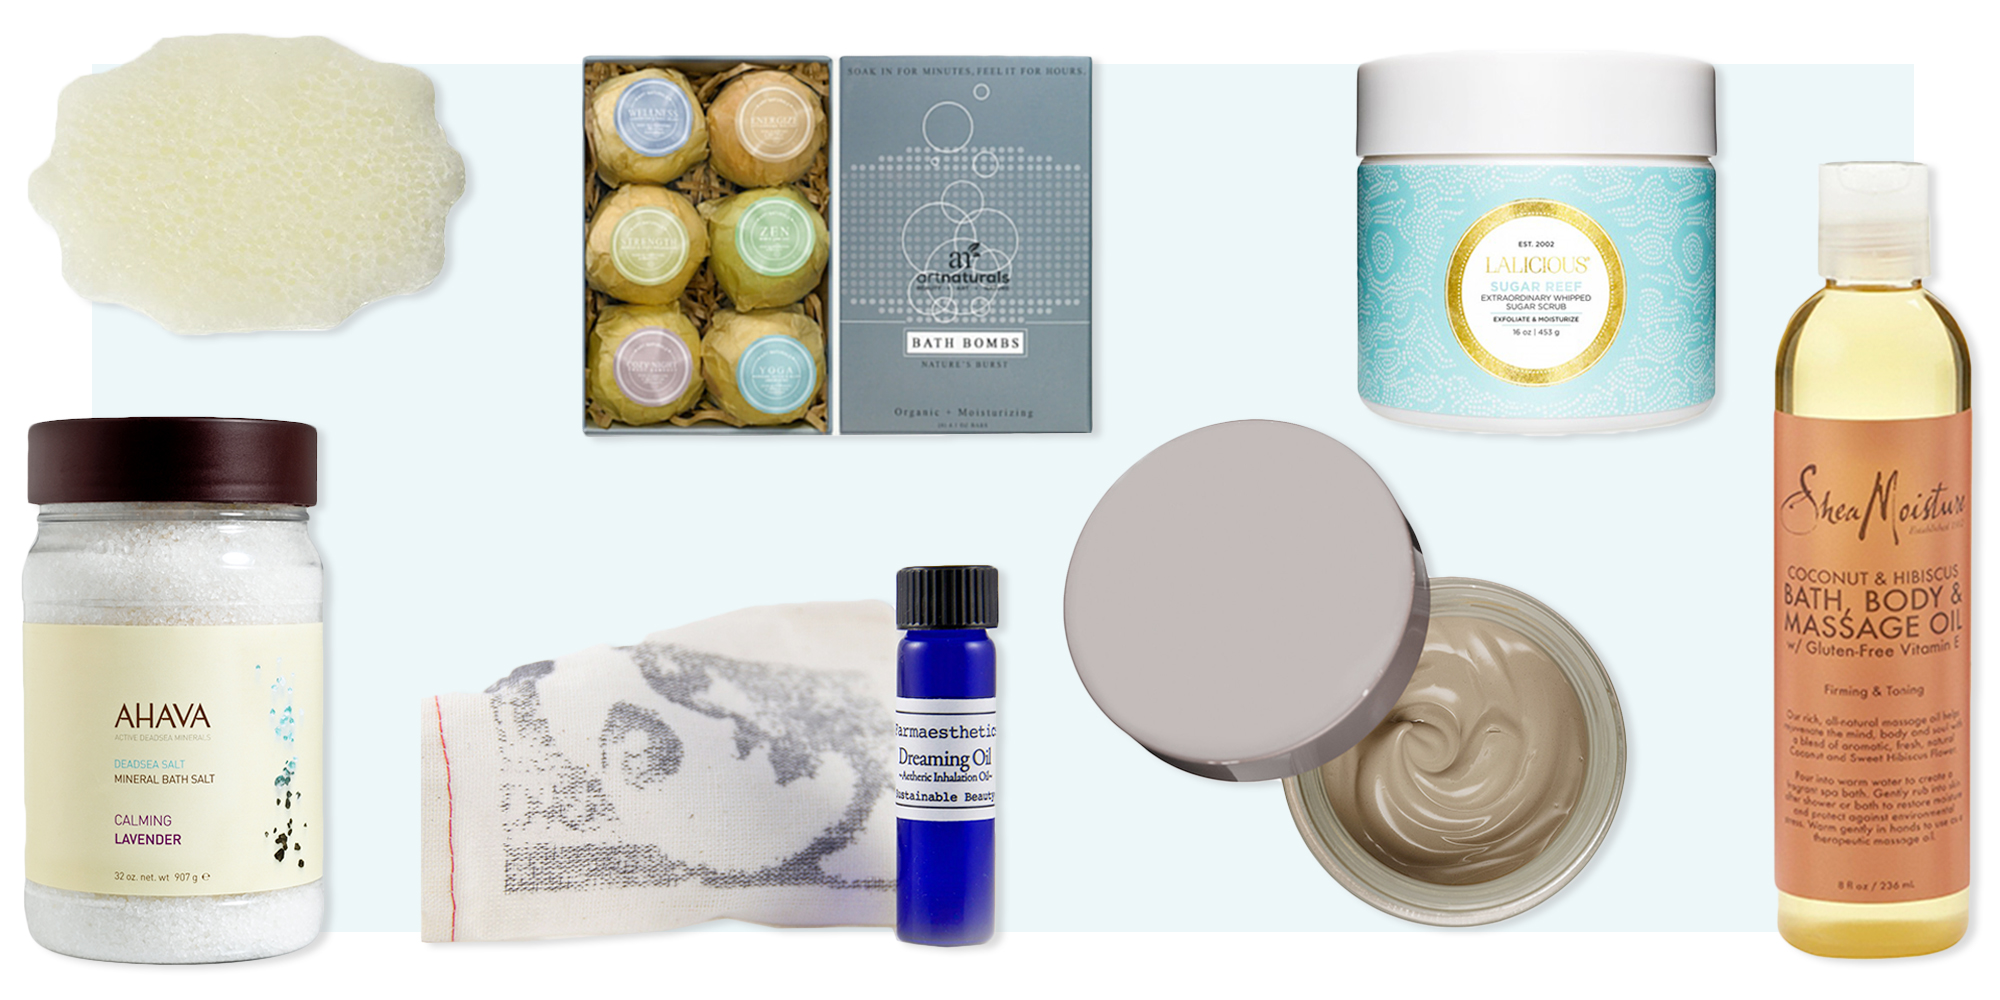 10 Best At Home Spa Treatments 2018 - Scrubs, Oils, and ...